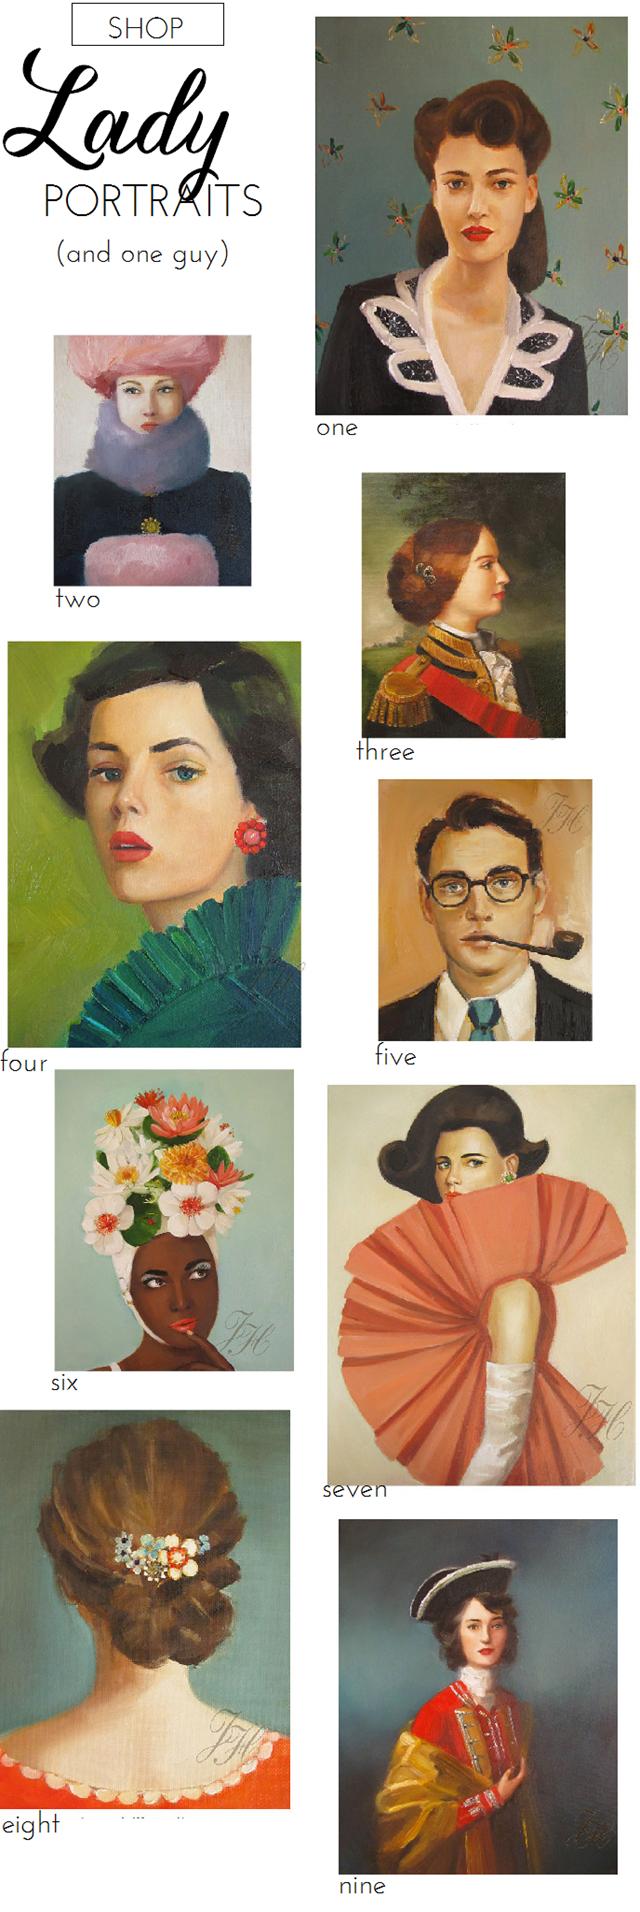 Lady Portraits by Janet Hill Studio